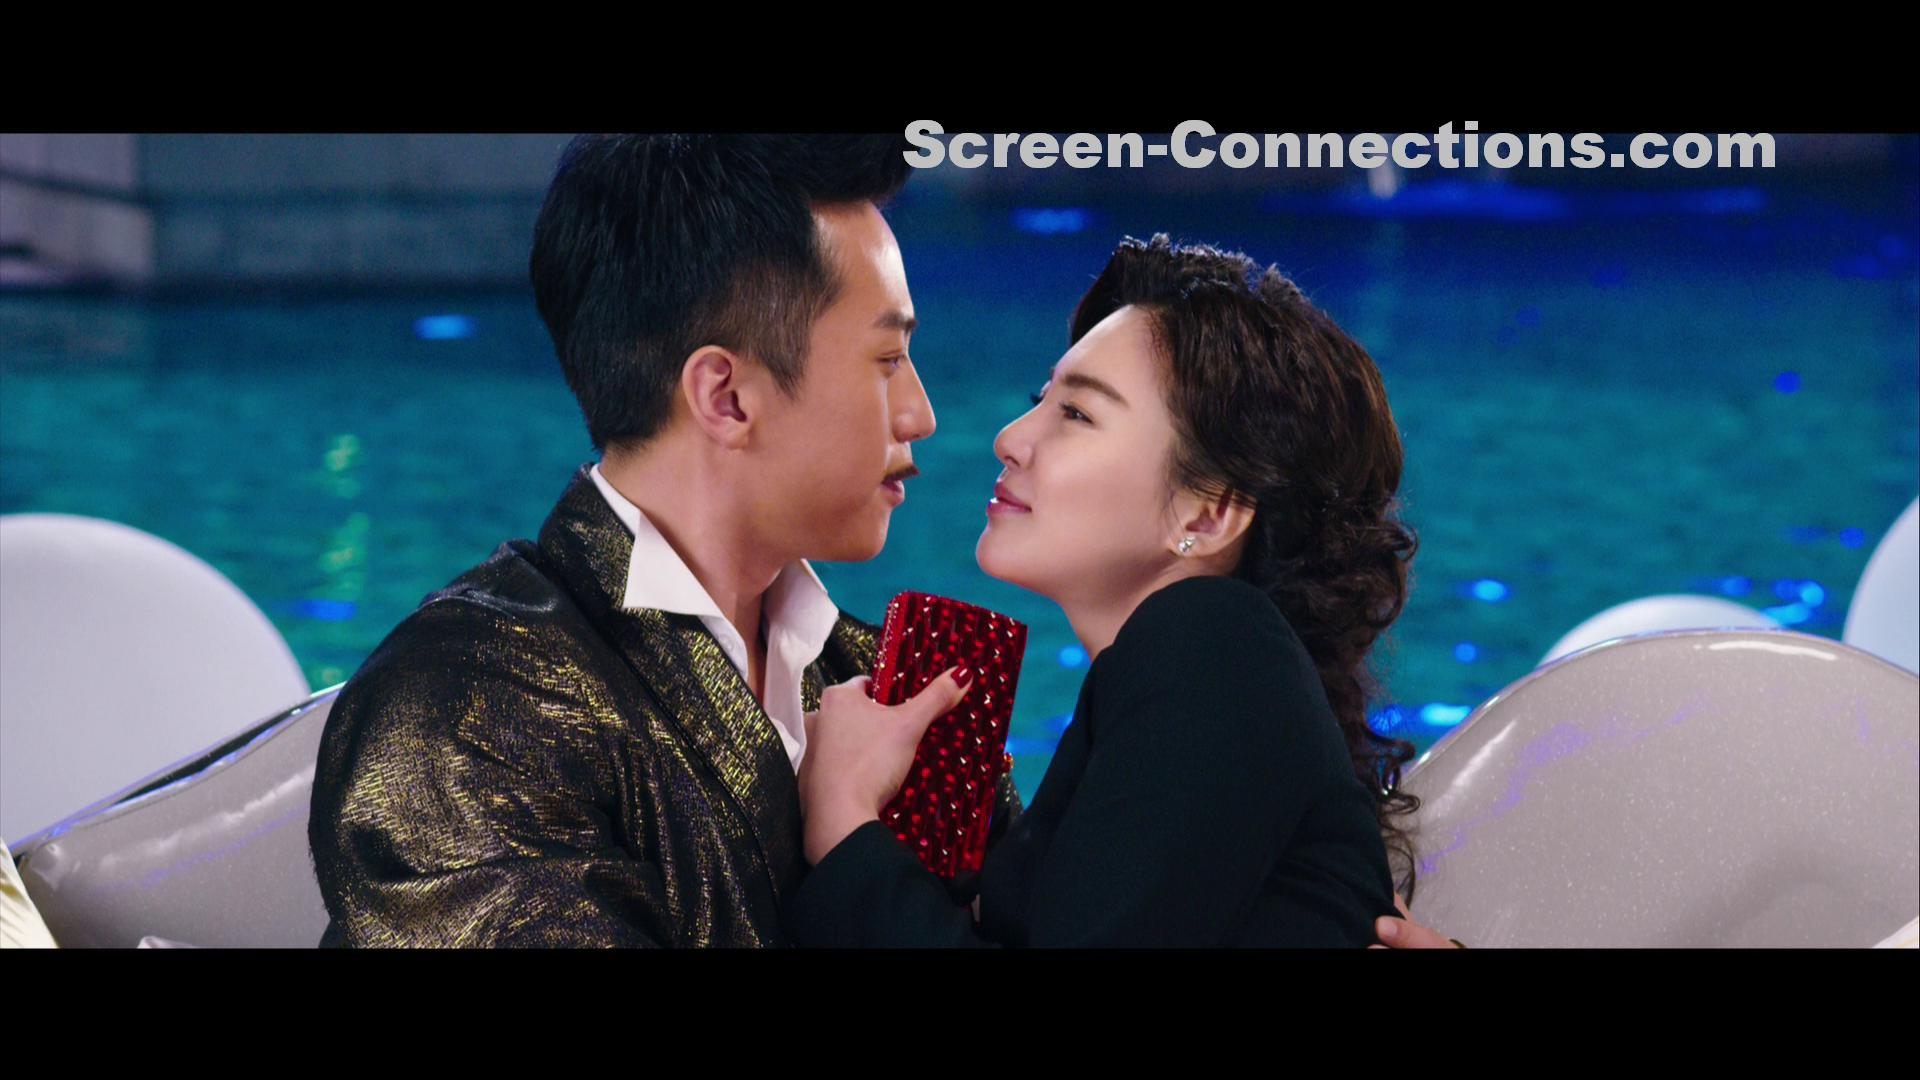 The Mermaid 2016 Blu Ray Image 05 Screen Connections